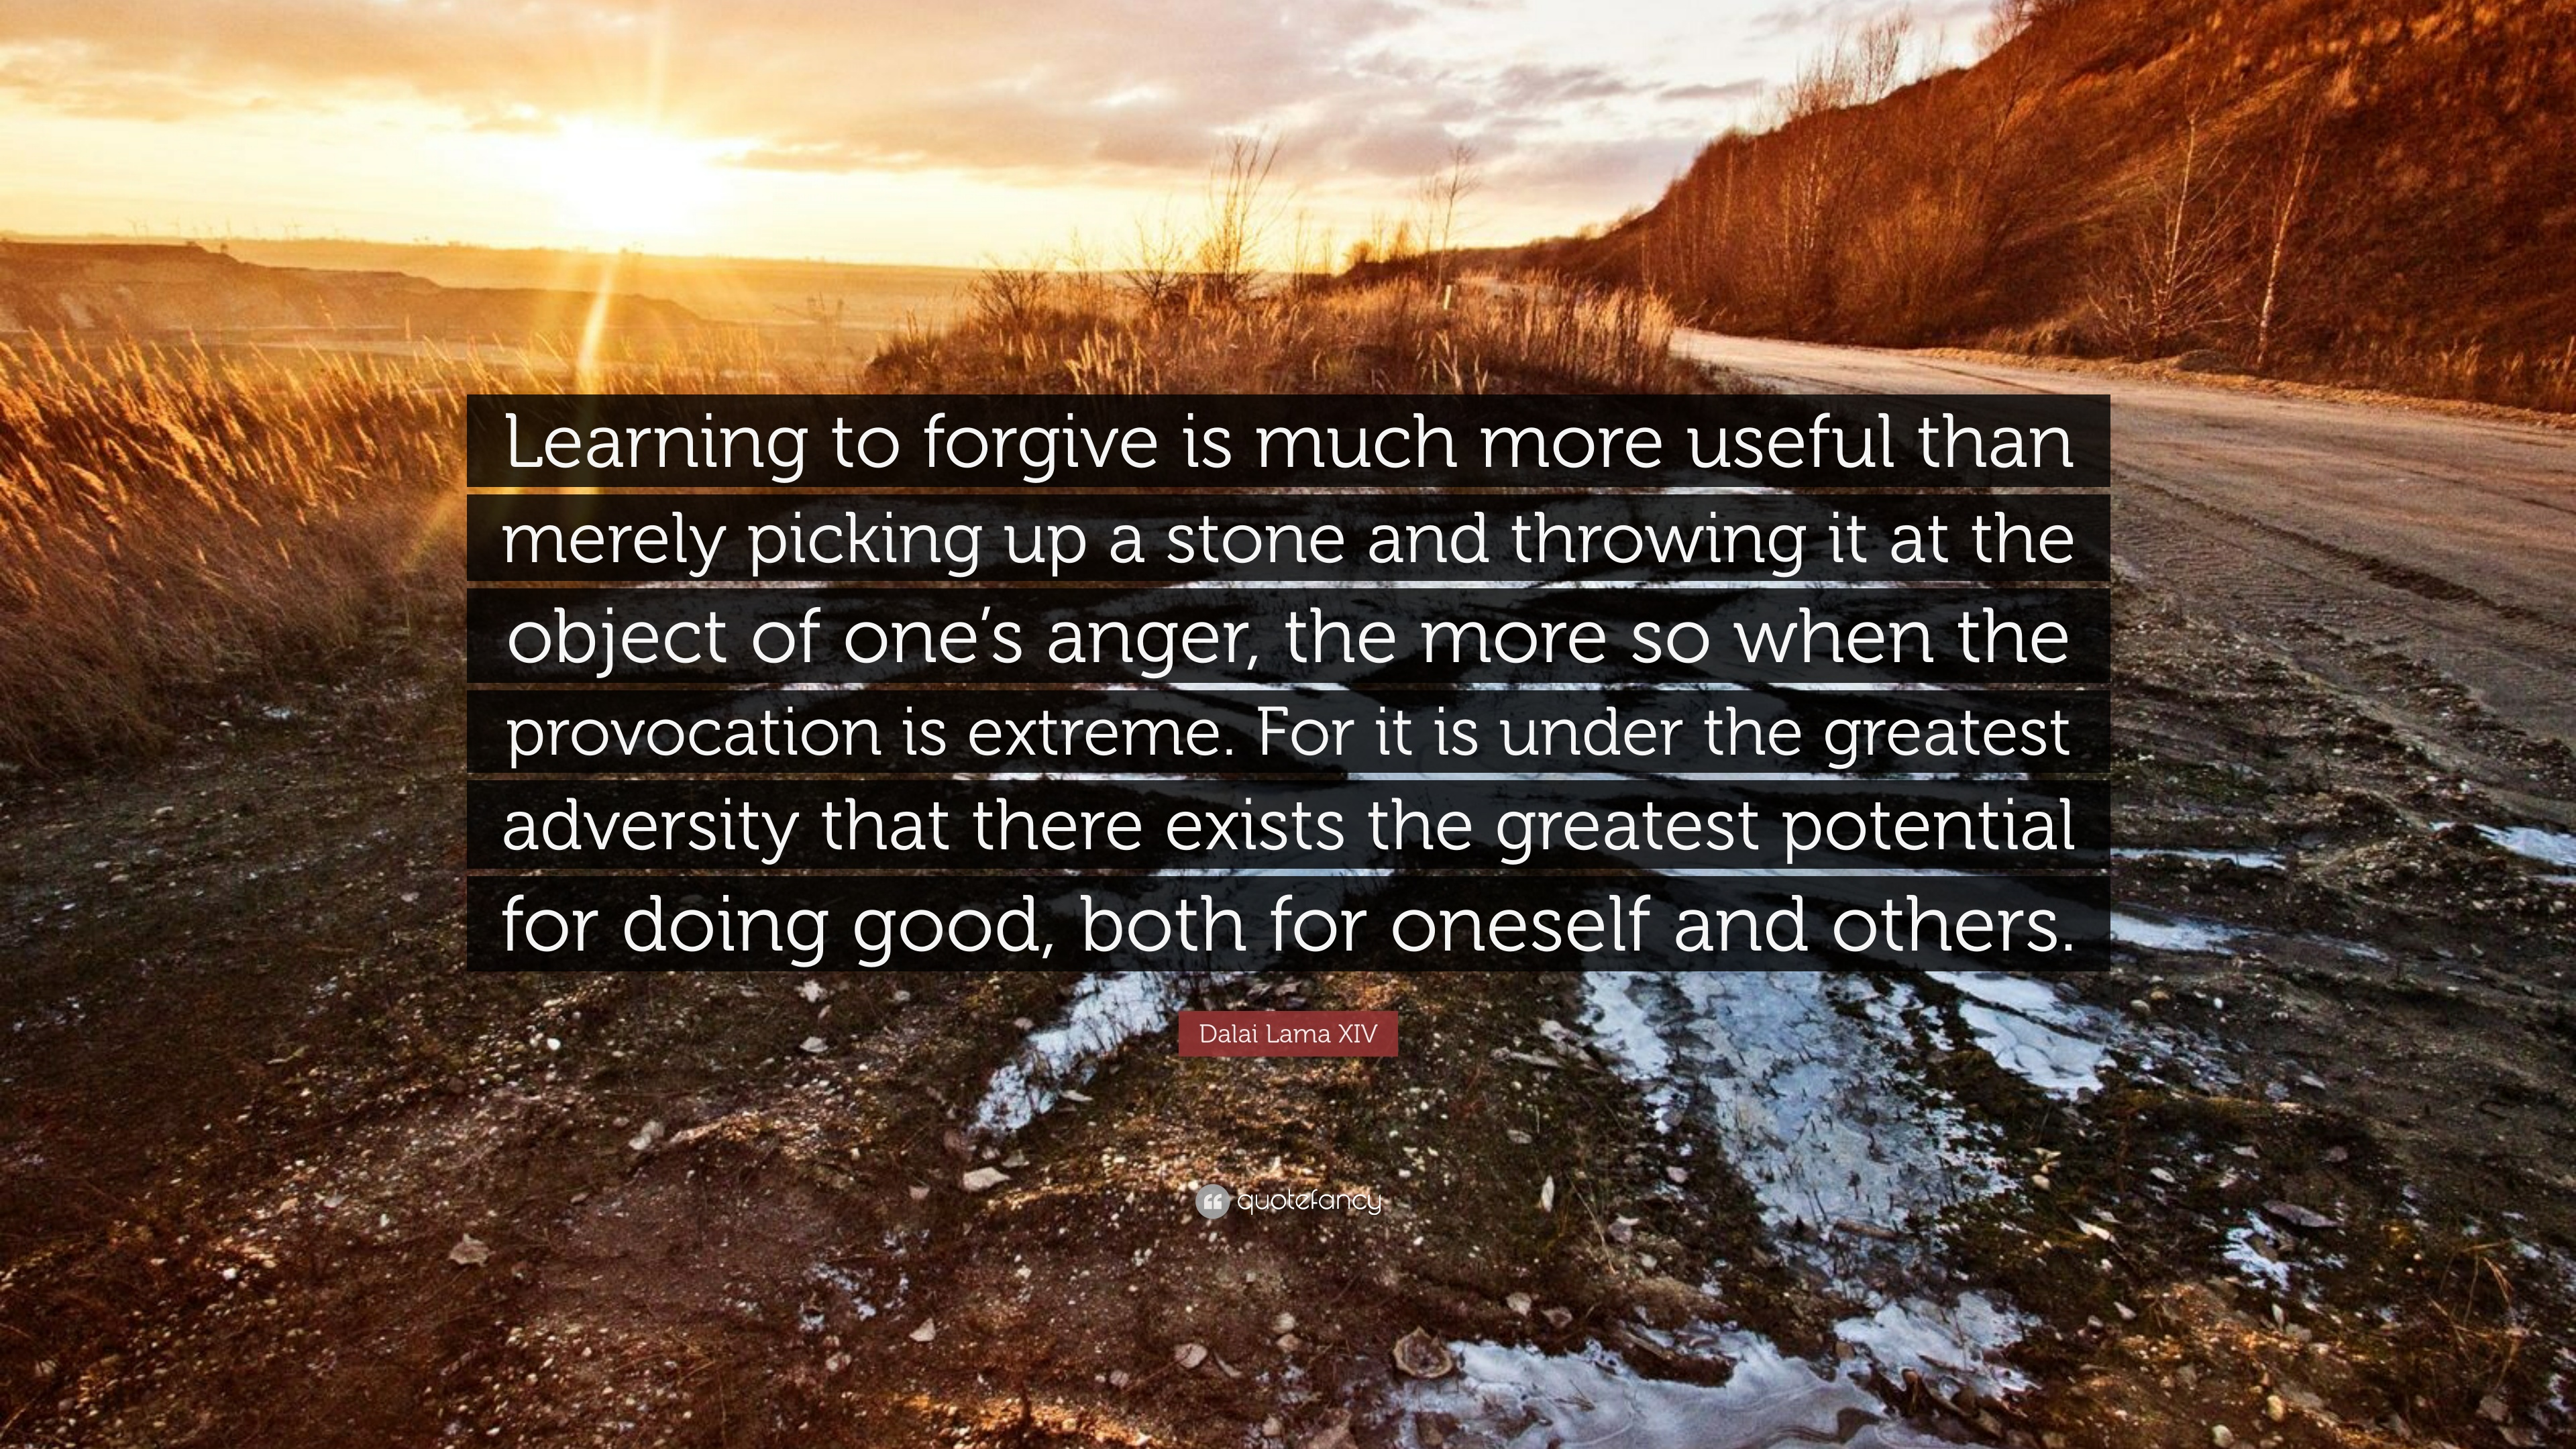 Dalai Lama Xiv Quote Learning To Forgive Is Much More Useful Than